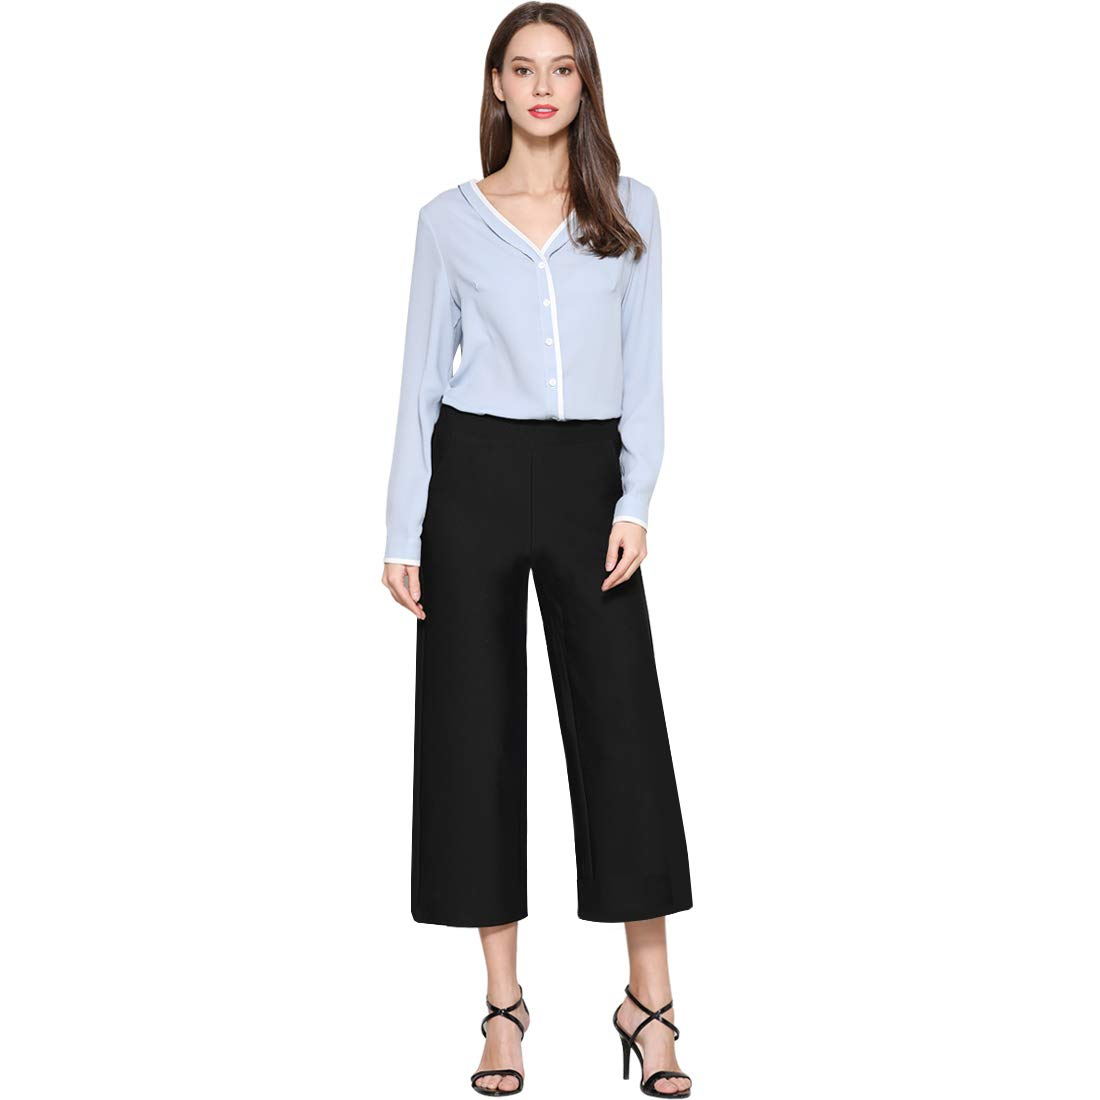 Tsful Women's Casual Loose Wide Leg Pants Pull On Dress Pant(Black, L-Waist 33.07''/Hips 40.16''/Length: 34.25'') by Tsful